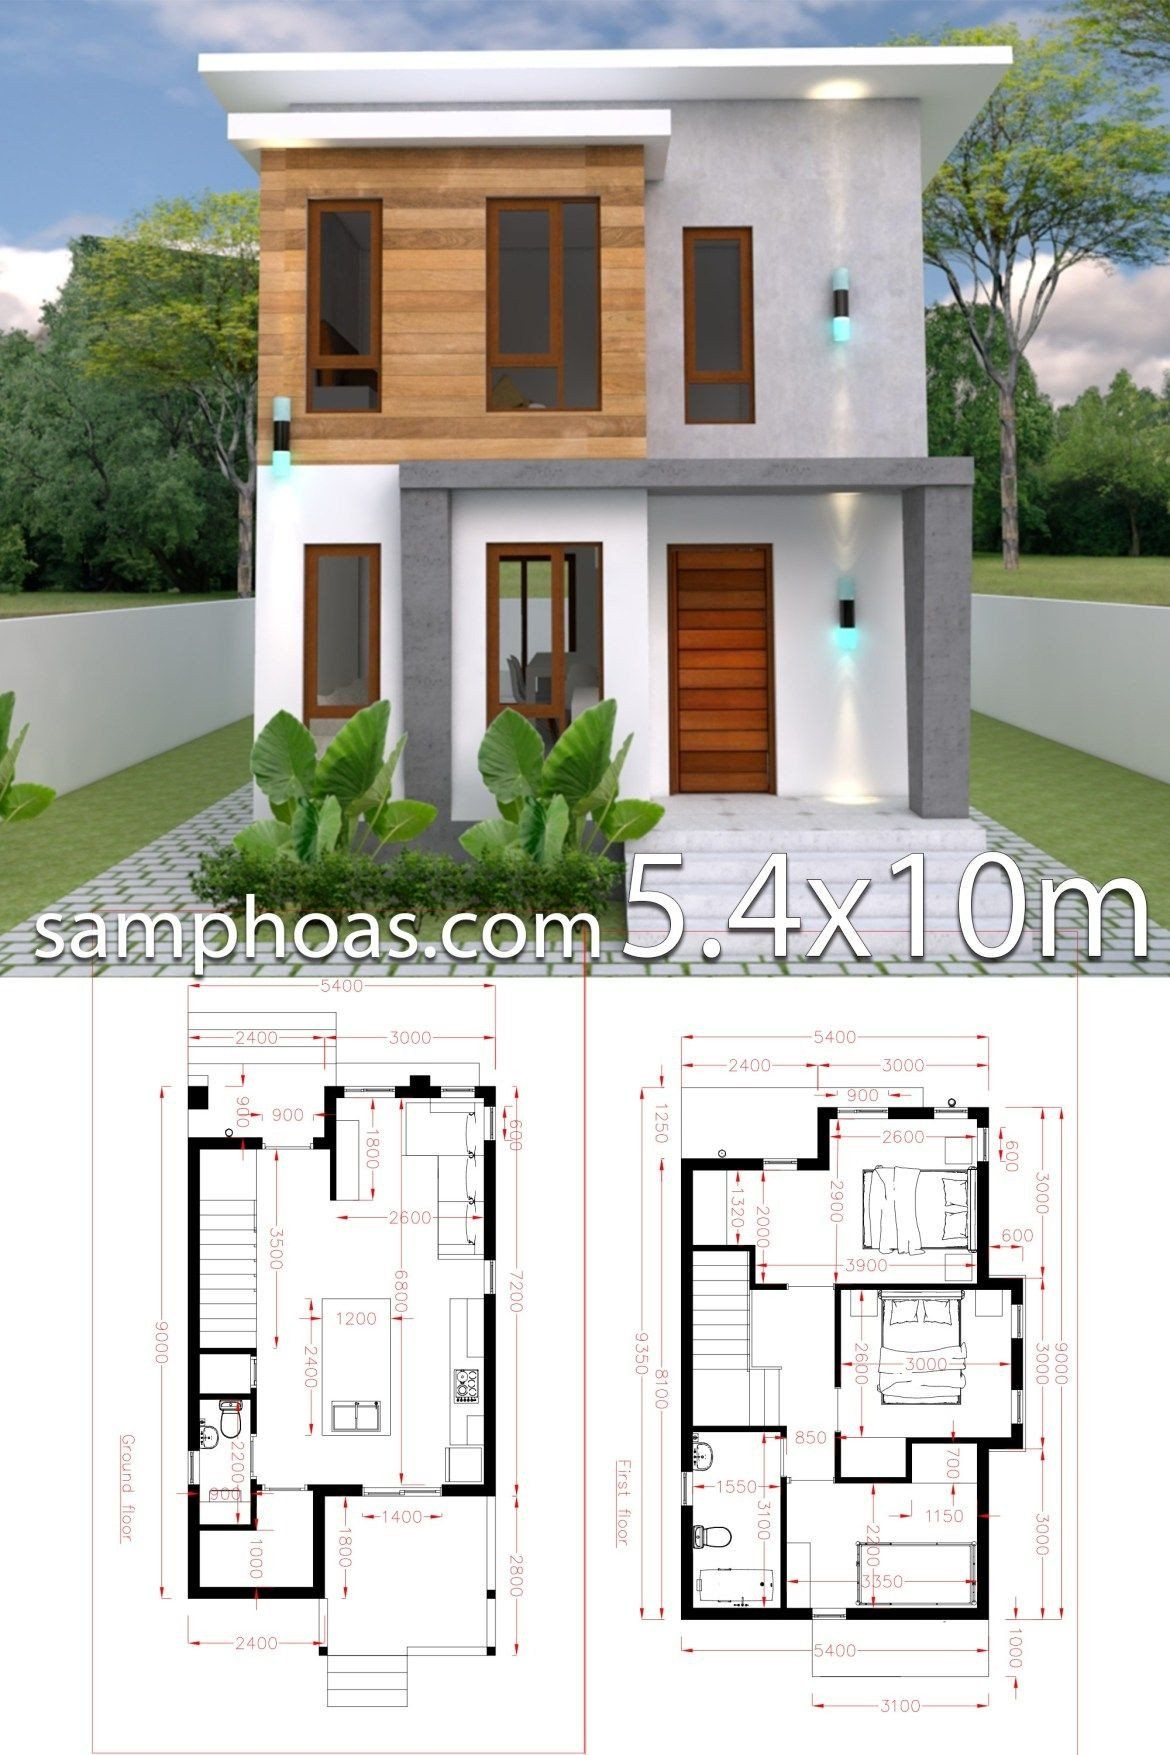 Simple Modern House Plans Small Home Design Plan 5 4x10m With 3 Bedroom In 2020 Small House Design Plans Simple House Design Model House Plan